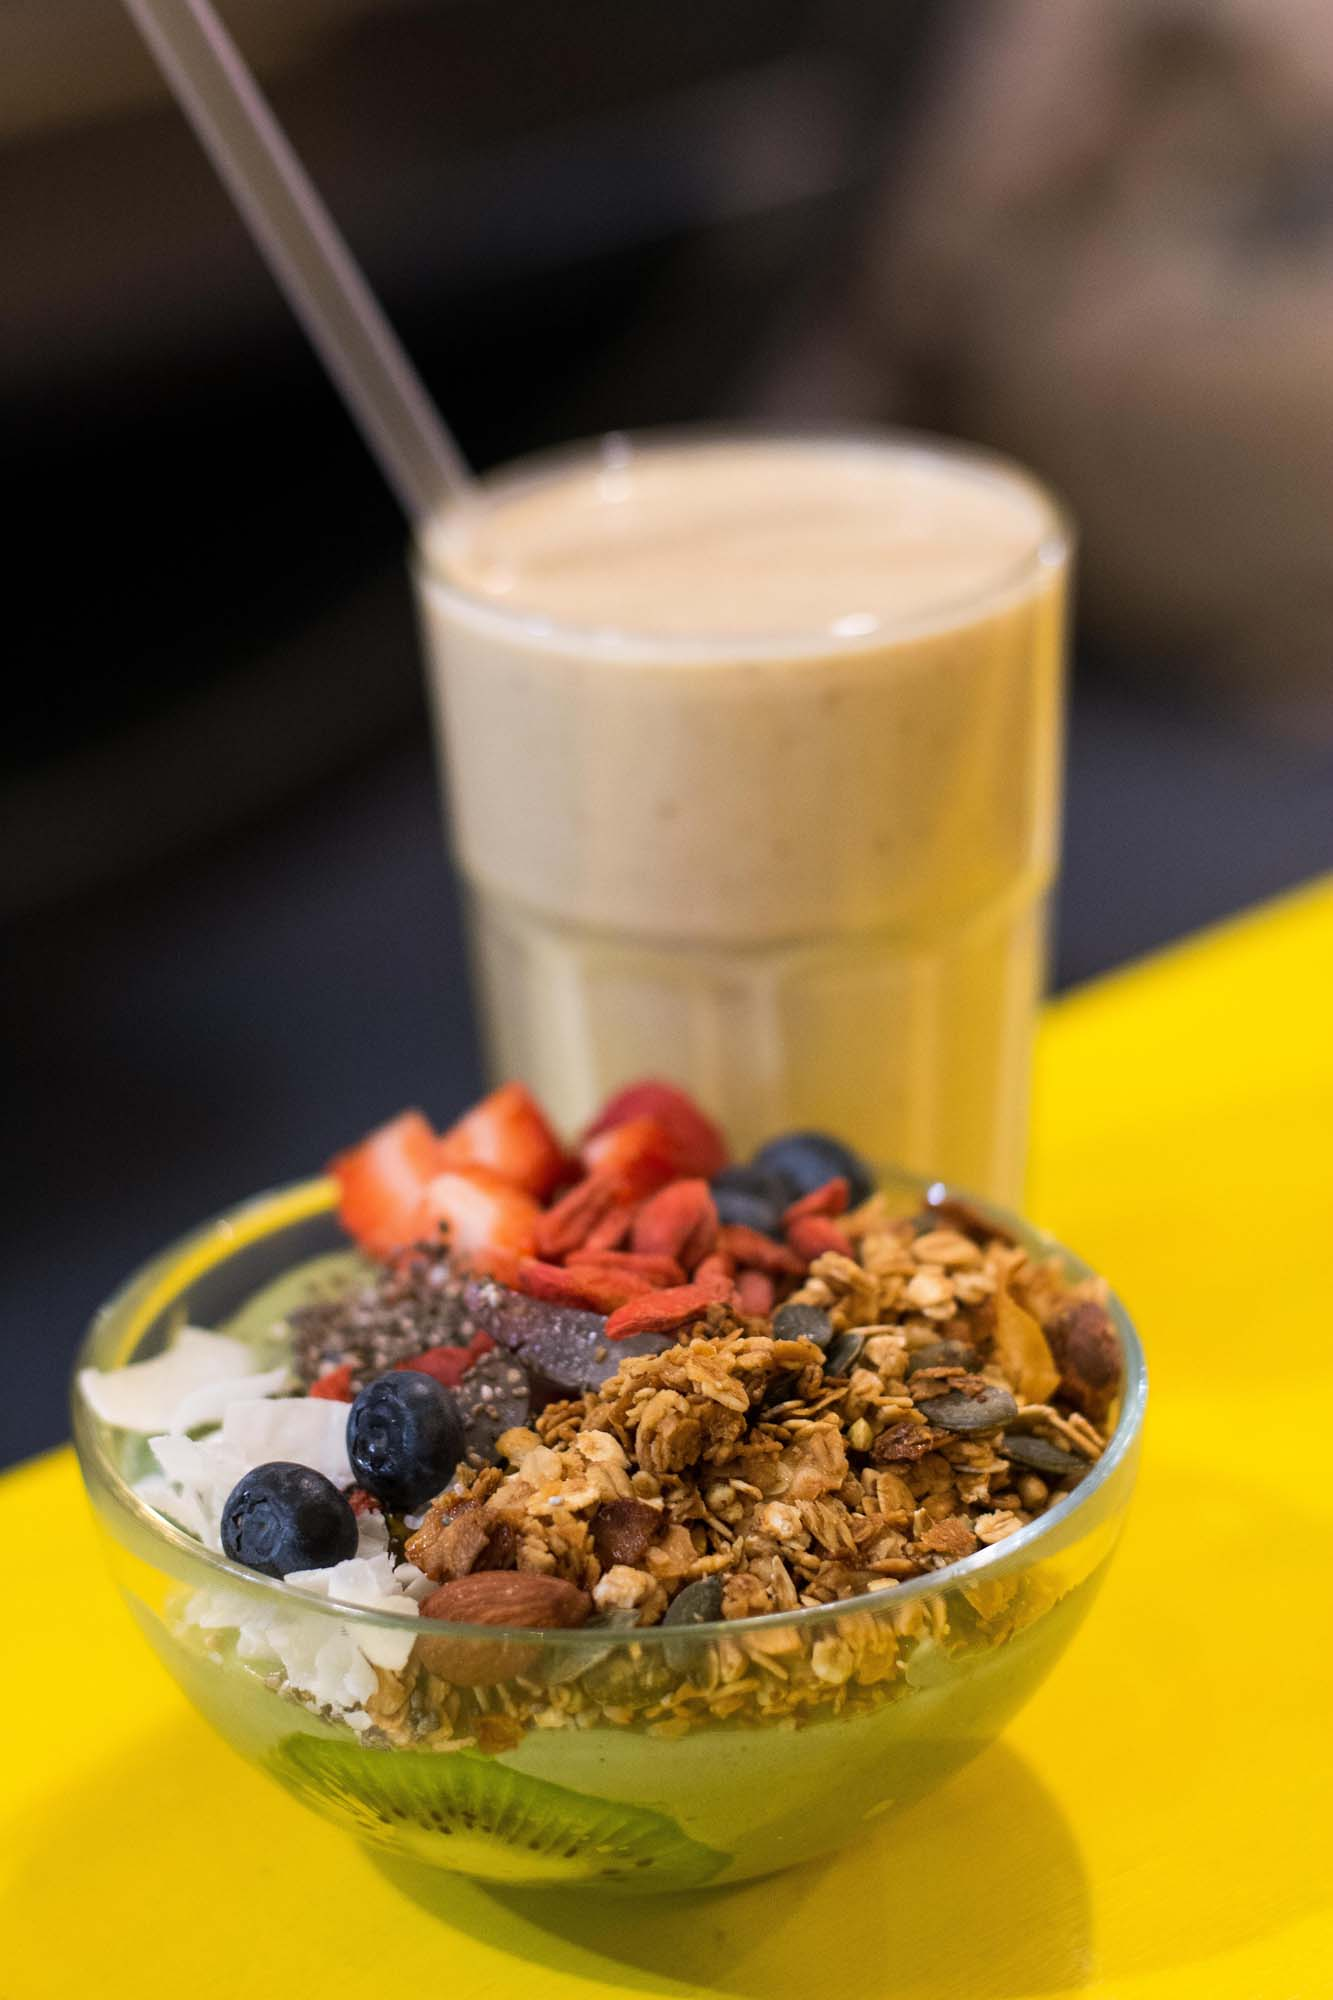 Smoothie bowl with granola at Hammock Juice Station, Barcelona. Photo © Barcelona Food Experience.